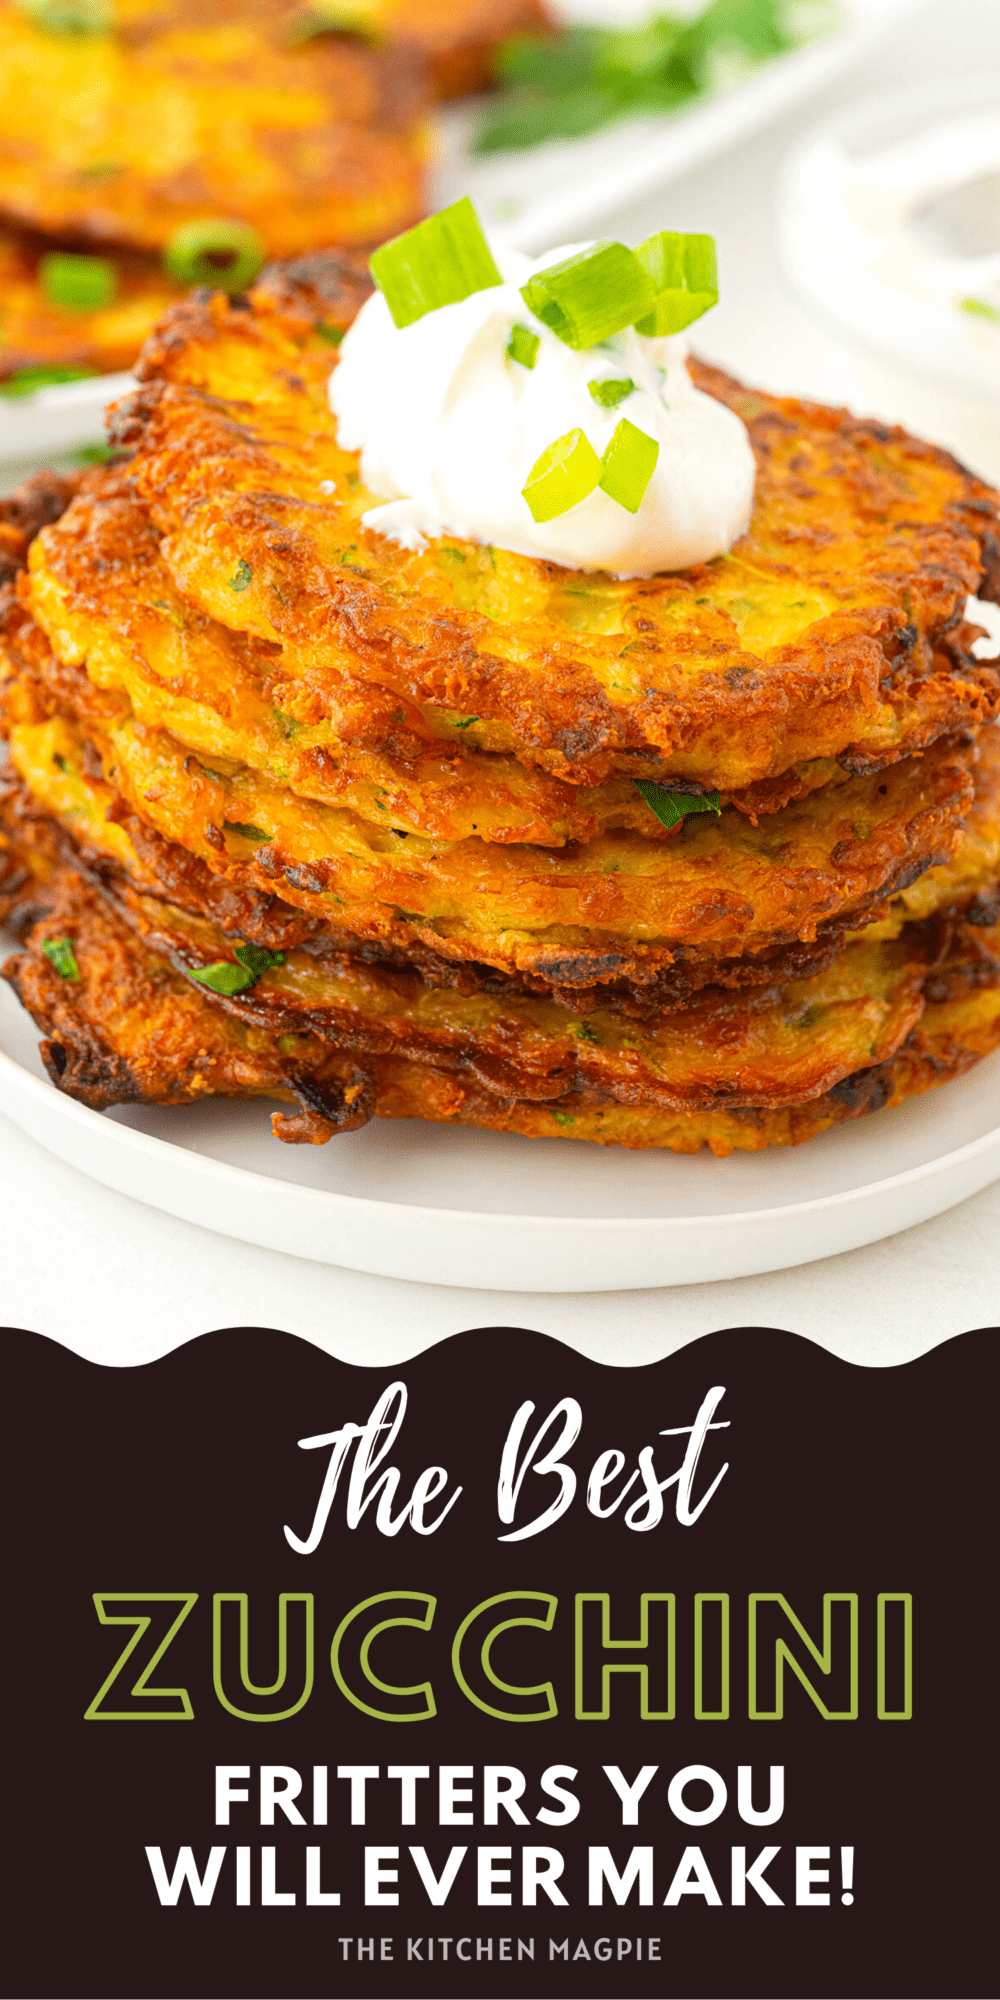 These zucchini fritters are loaded with two types of cheese, garlic and onion then fried to a golden, crispy perfection!